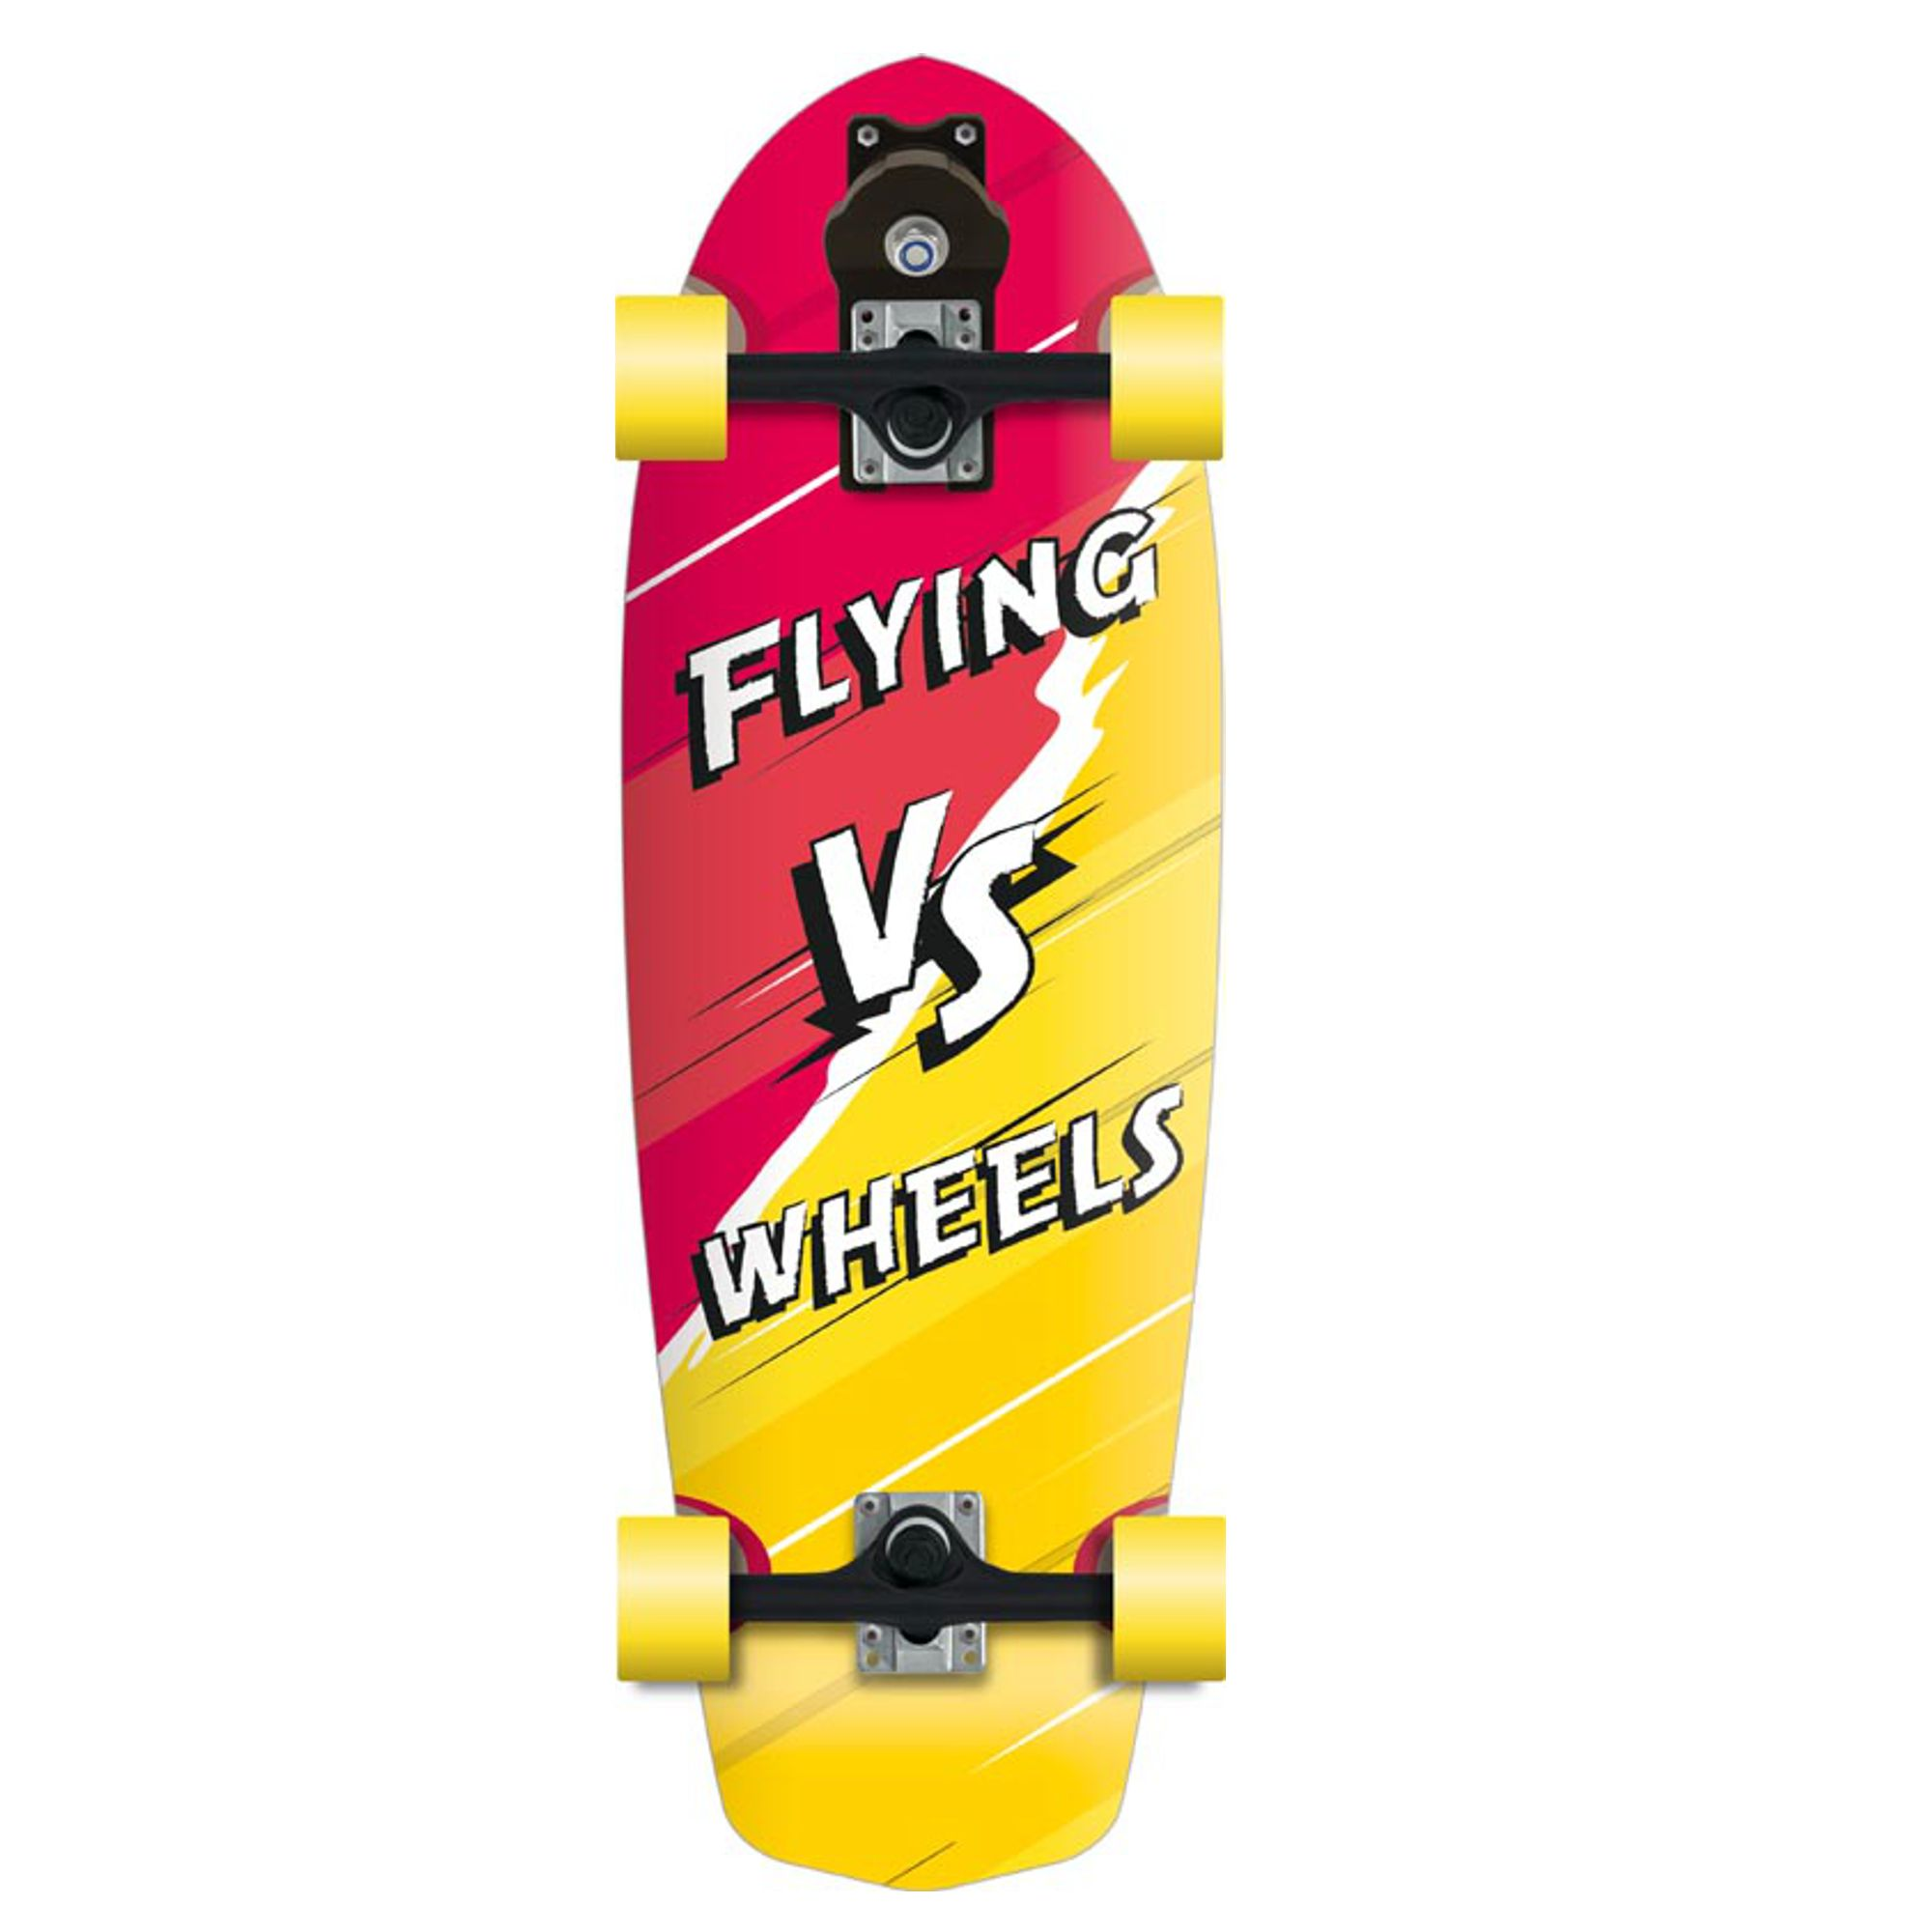 FLYING WHEELS Surf Skateboard 29 Versus Lombard Surfskate